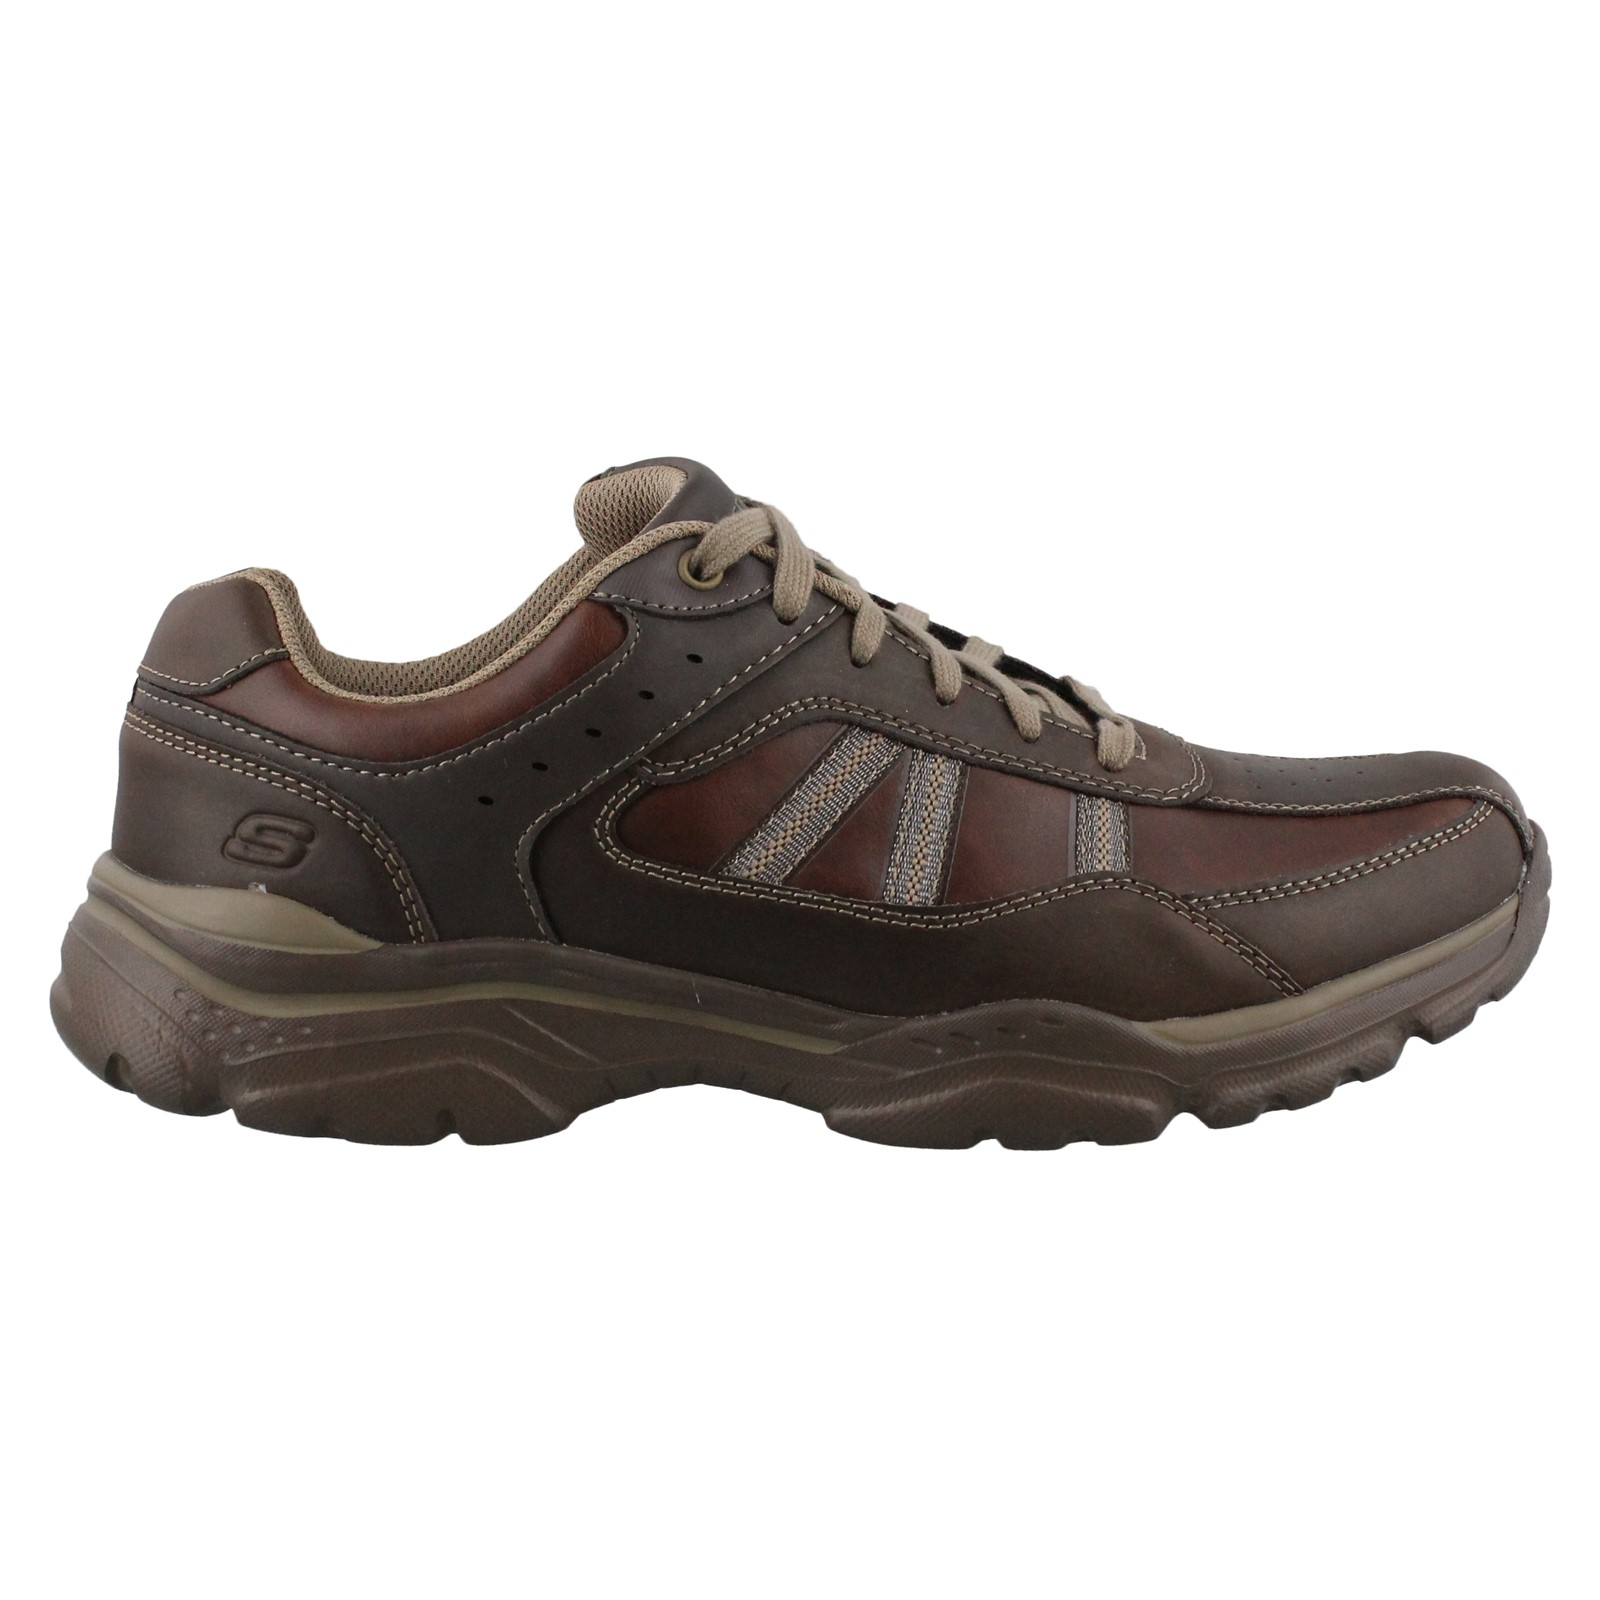 Men's Skechers, Rovato Texon Lace up Shoes